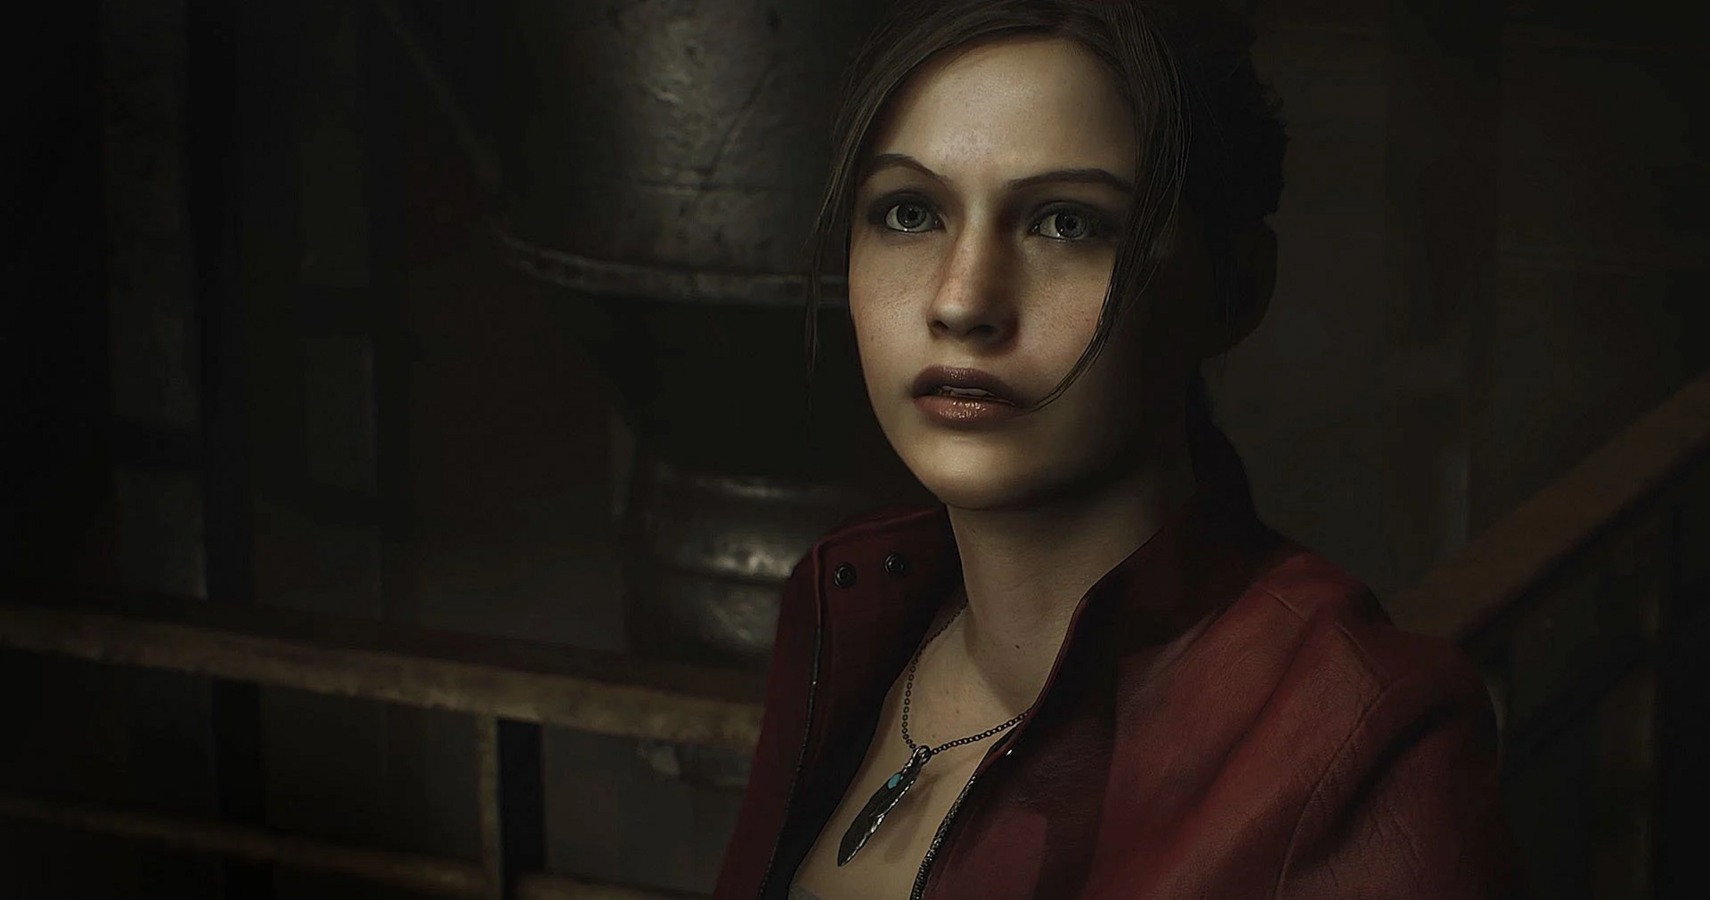 Resident Evil 2 Remake 2019 A Step By Step Guide To Getting The Heart Key